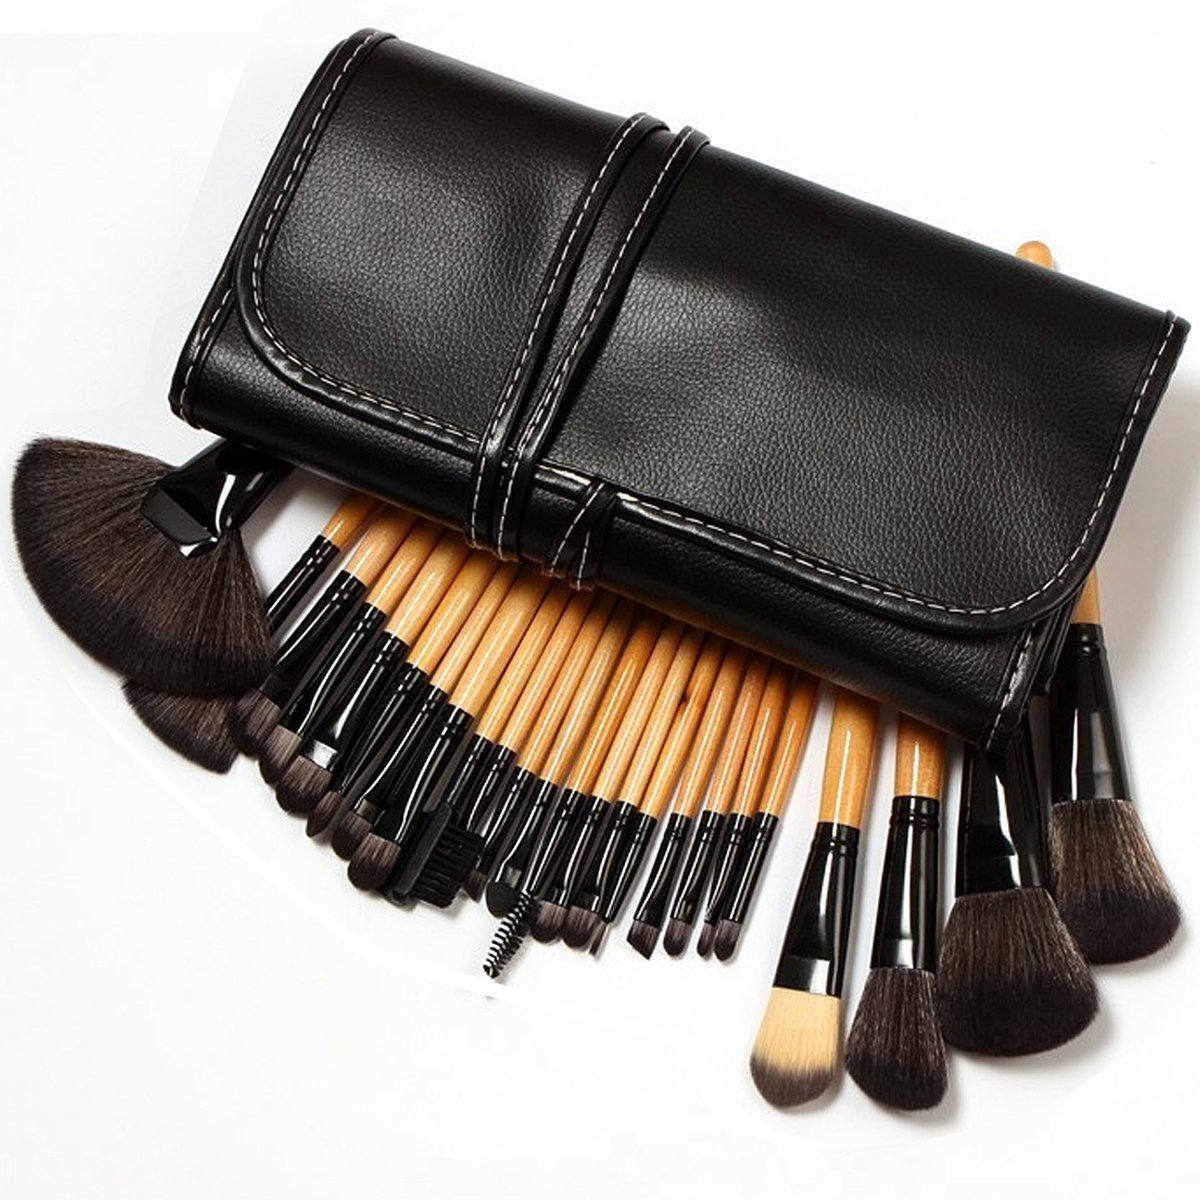 Kosee Beauty Makeup Set Brushes Bamboo Cosmetics Professional Essential 24 Piece Make Up Brush Kit with Travel Pouch